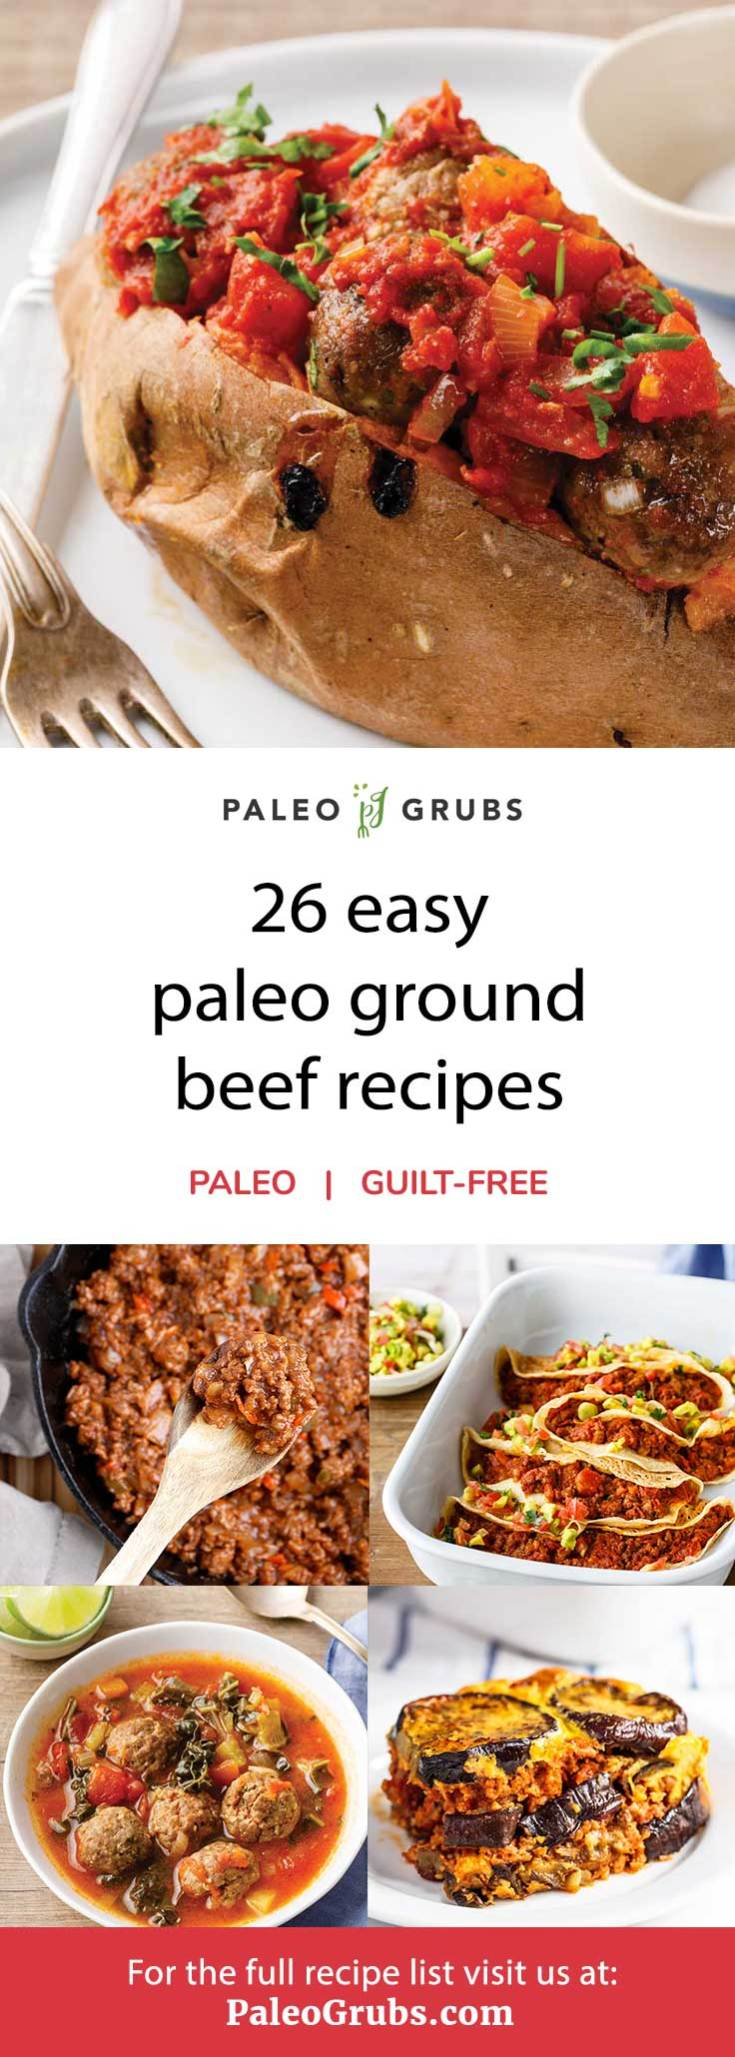 Here is a great list of delicious paleo ground beef recipes. These are so easy to make and one of my favorites when I need to pull together a quick meal.